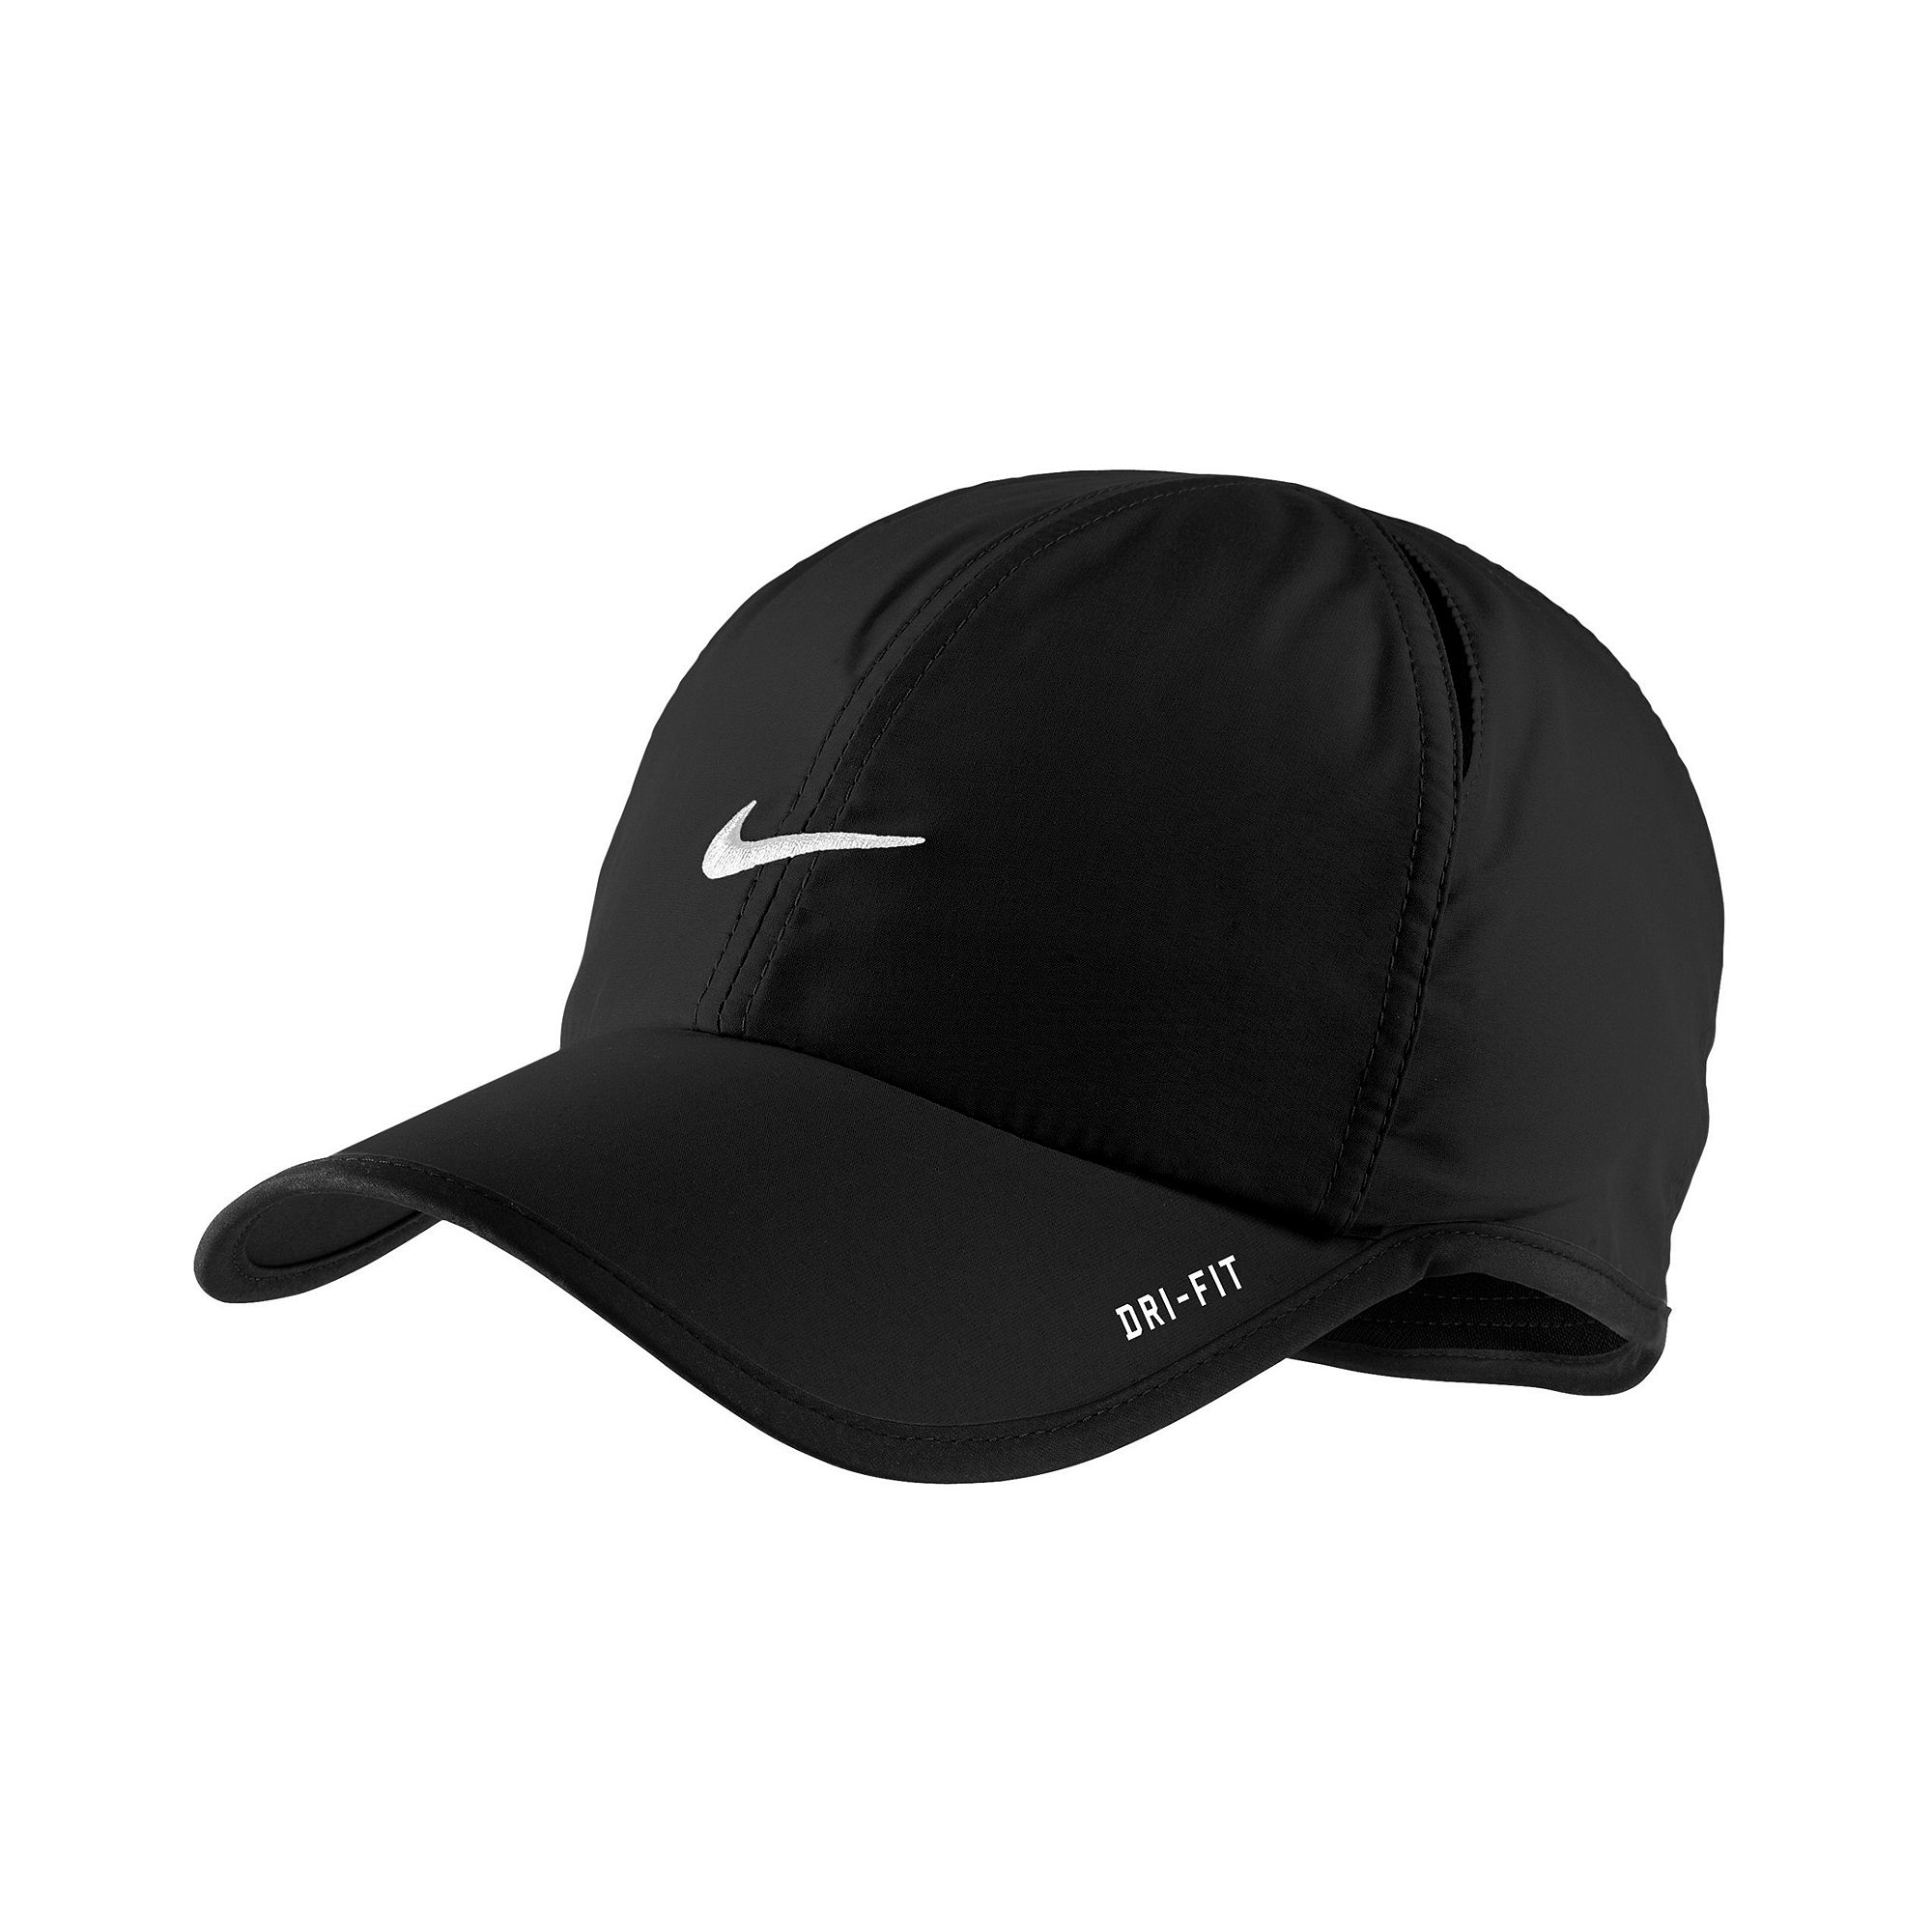 hot sale online 6c927 8f9bc ... usa lyst nike dri fit feather light cap in black for men 84194 7575b